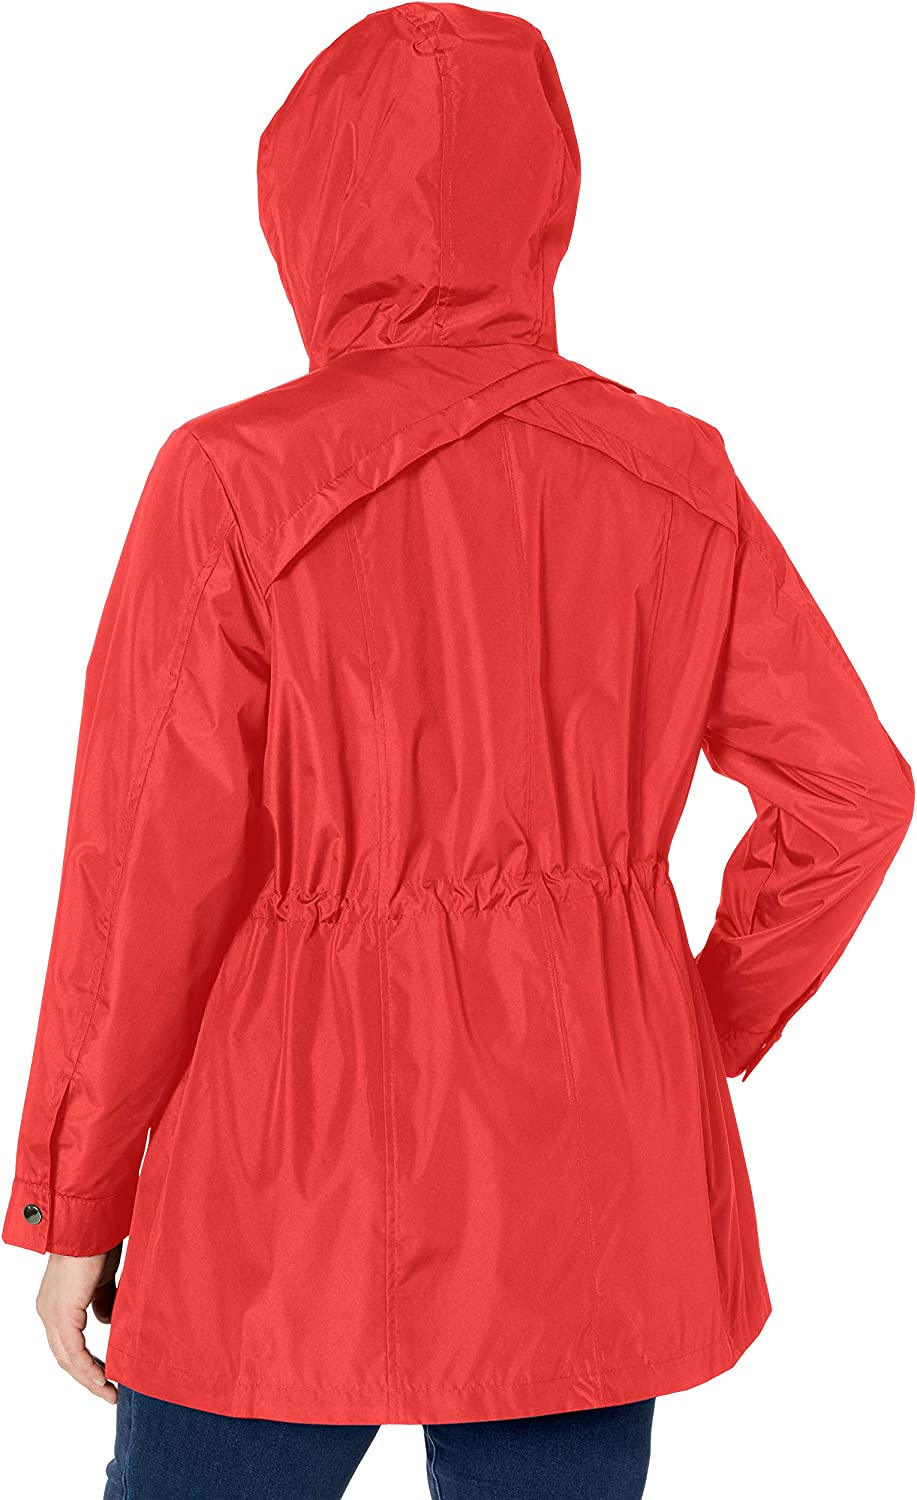 Details Womens Plus Size Zip Front Hooded Anorak